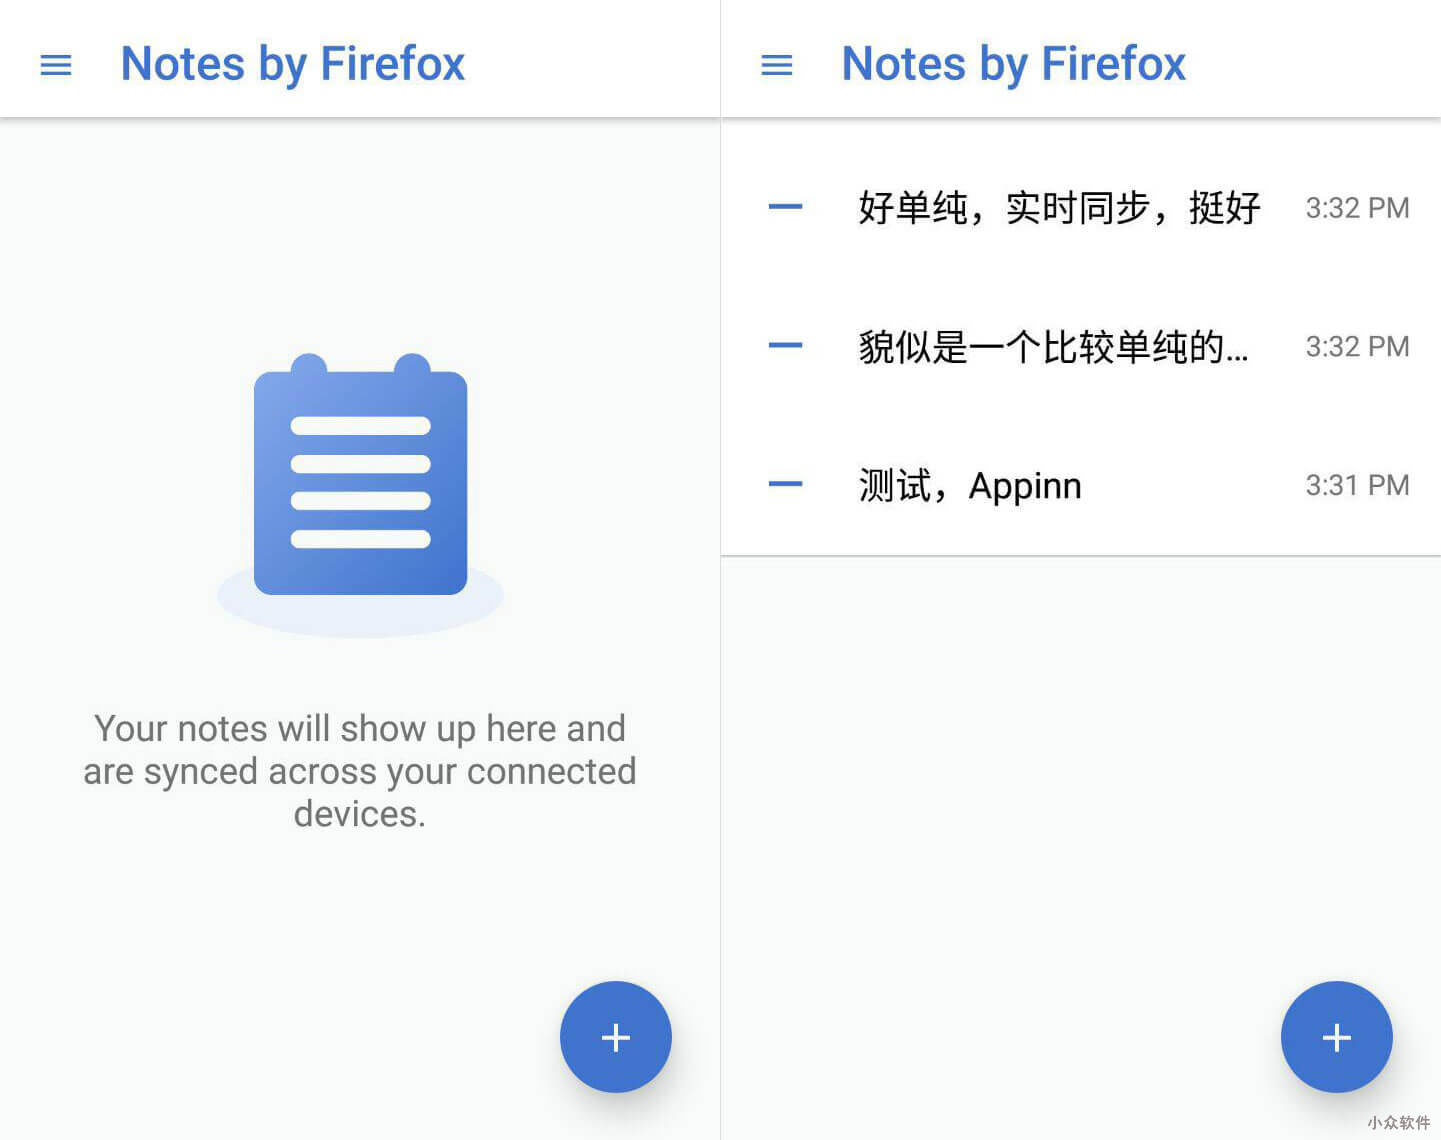 Notes by Firefox - 火狐推出「安全便签」应用 [Firefox / Android] 3